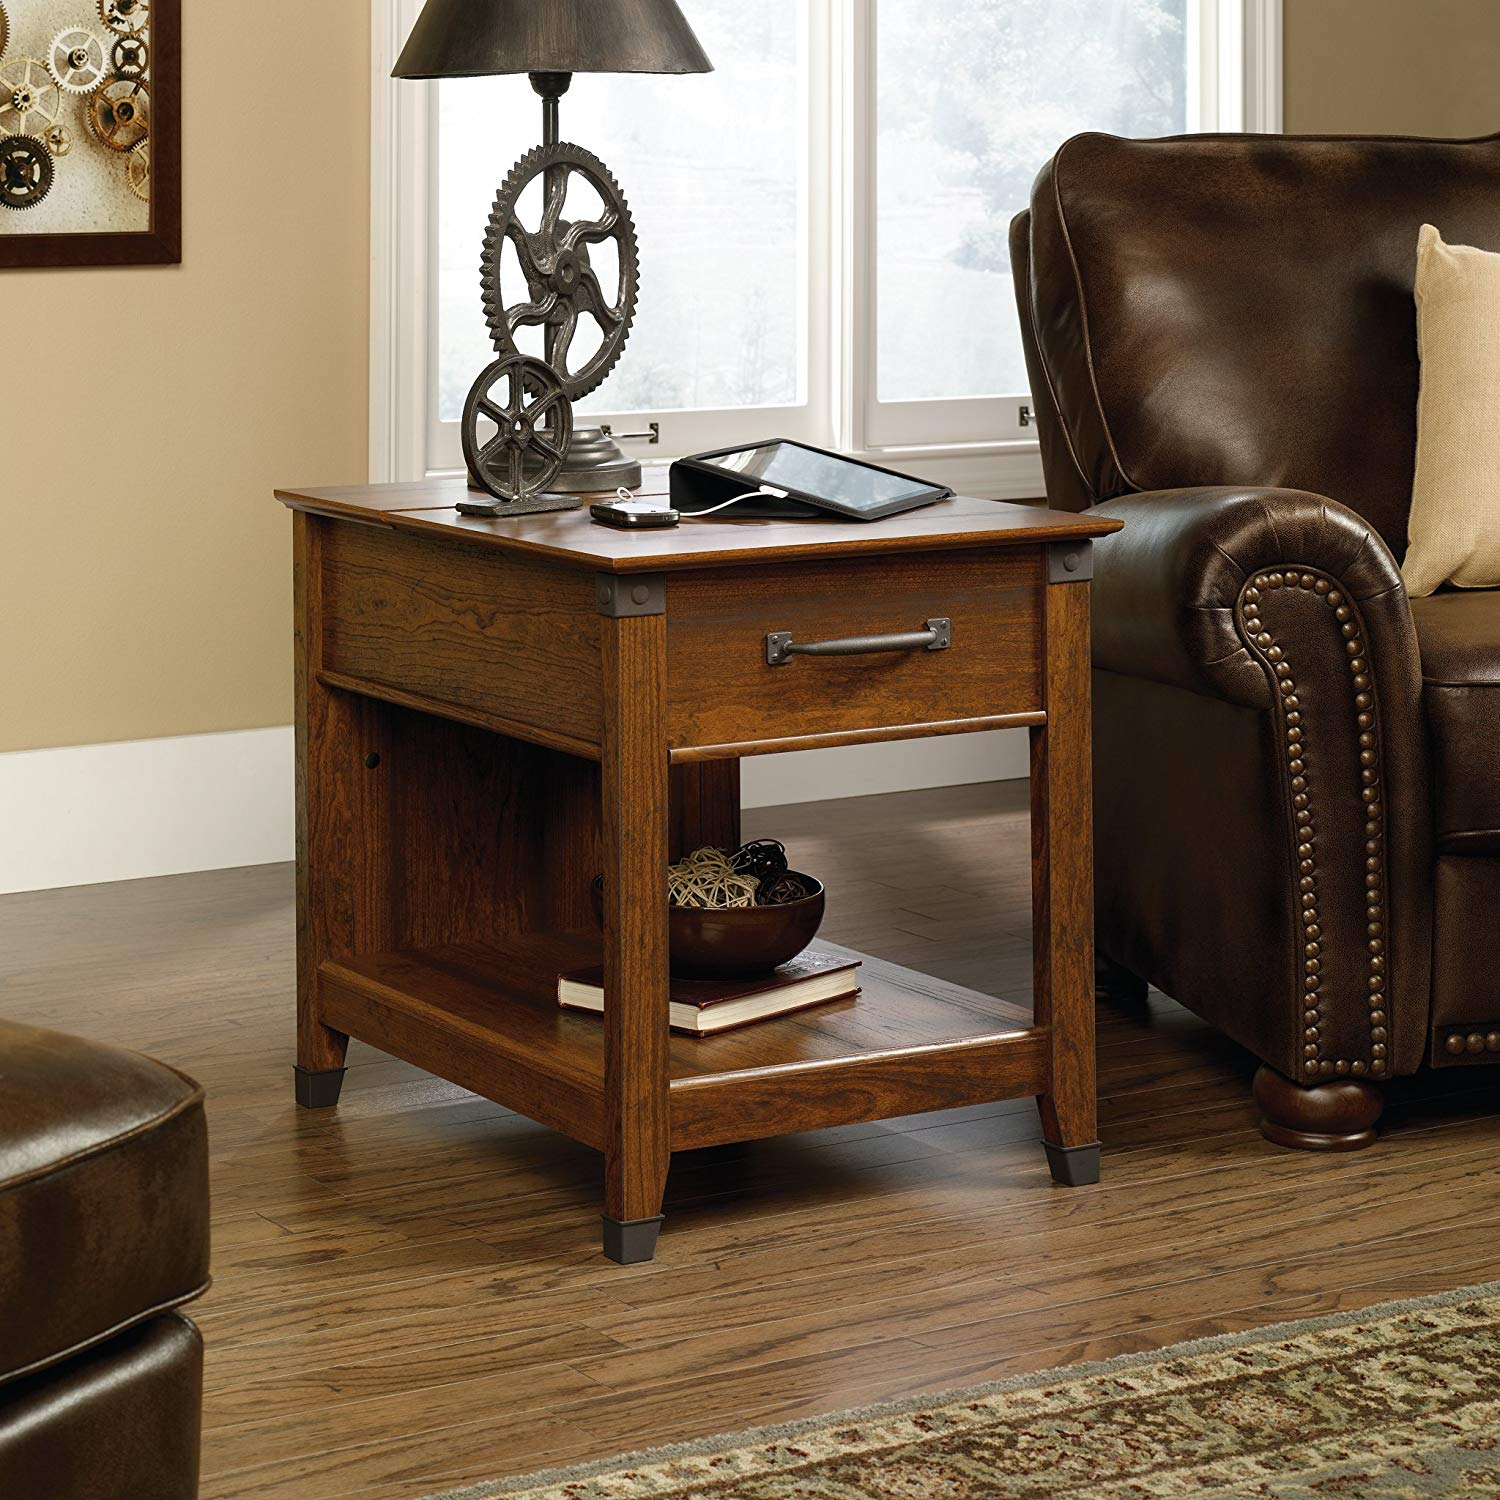 sauder carson forge smartcenter side table end with hidden power strip cherry finish kitchen dining ashley furniture rustic coffee blue lamp round and sets accent entertainment